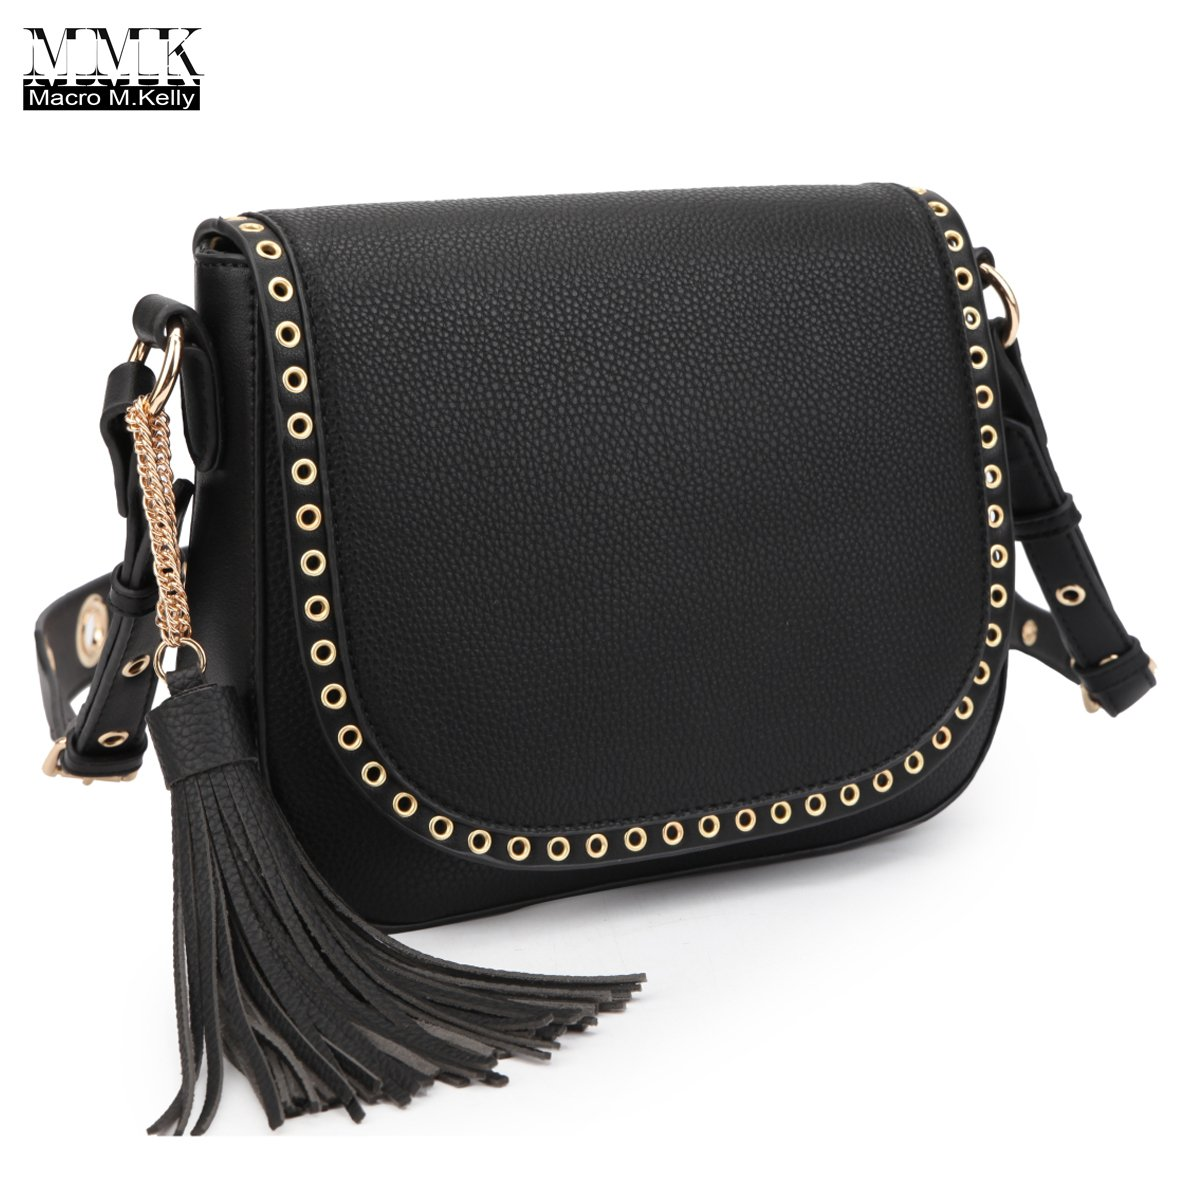 MMK Collection Young Women Small Size PU Leather Metal Whole and Hanging Tassel Decorated (7368) Corssbody Handbag (Black)